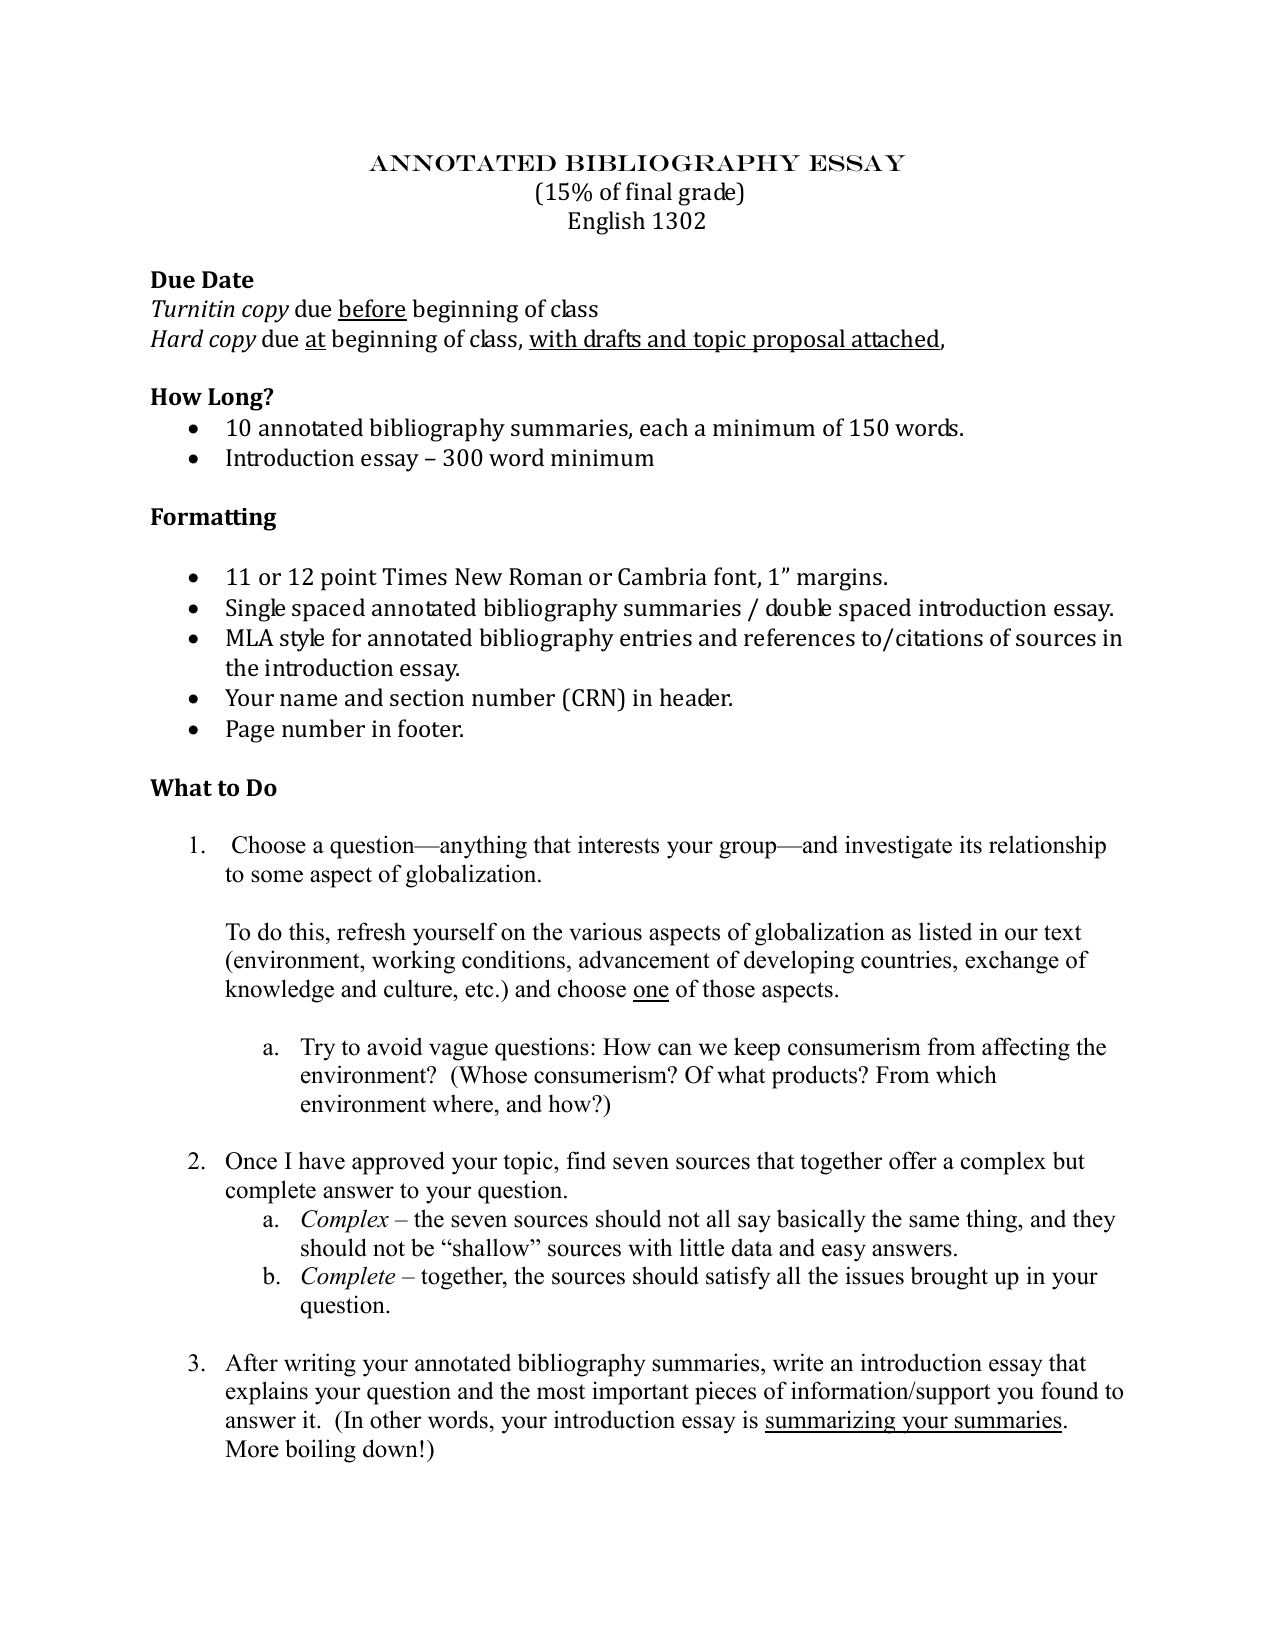 hcc annotated bibliography project doc